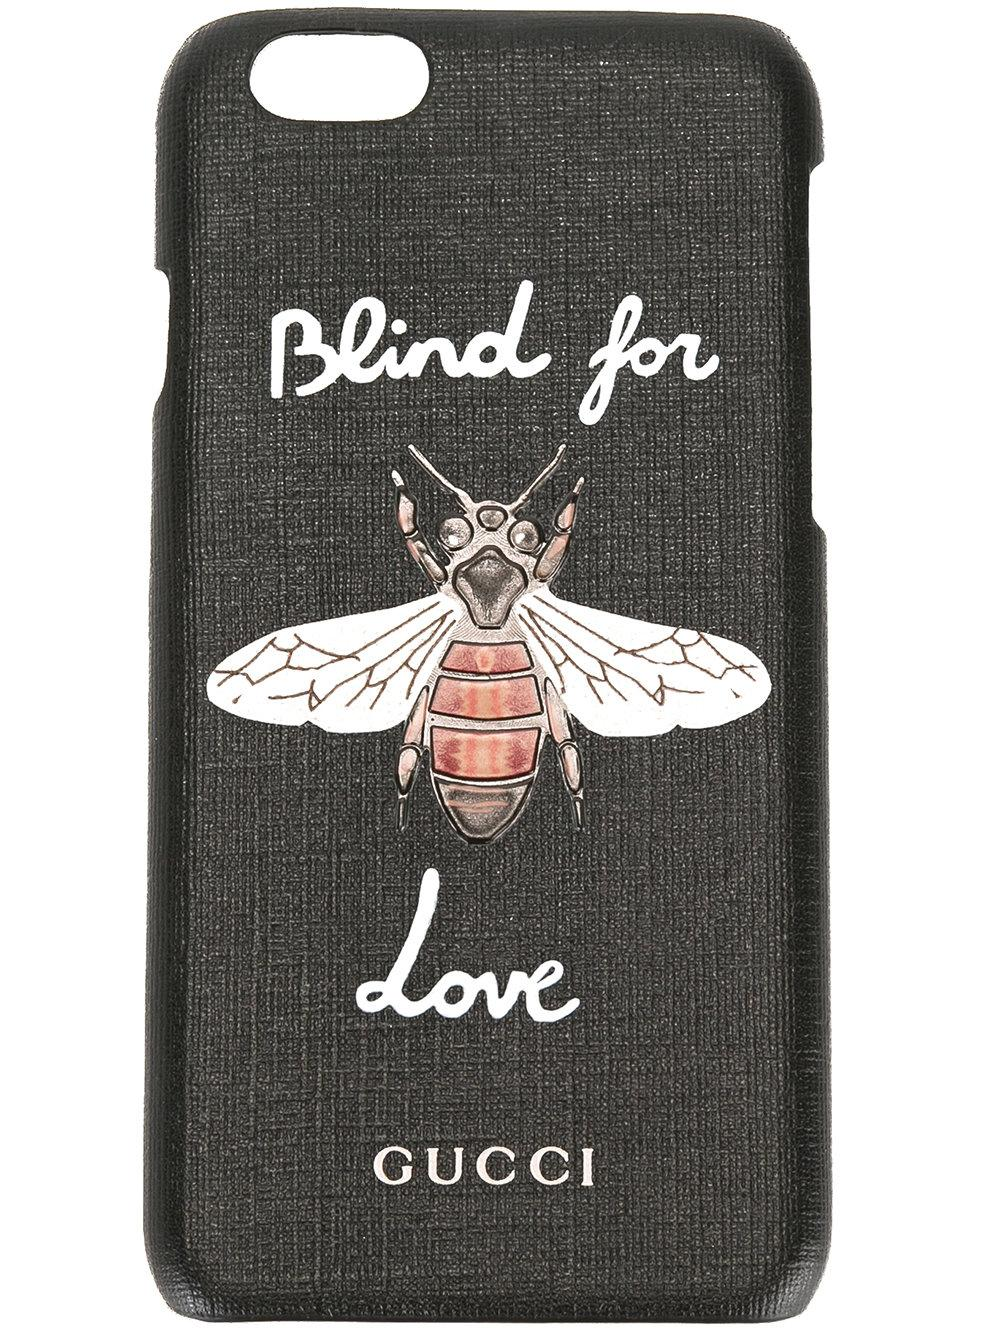 premium selection a1c84 59a40 Gucci Blind For Love Iphone 6s Case in Black - Lyst